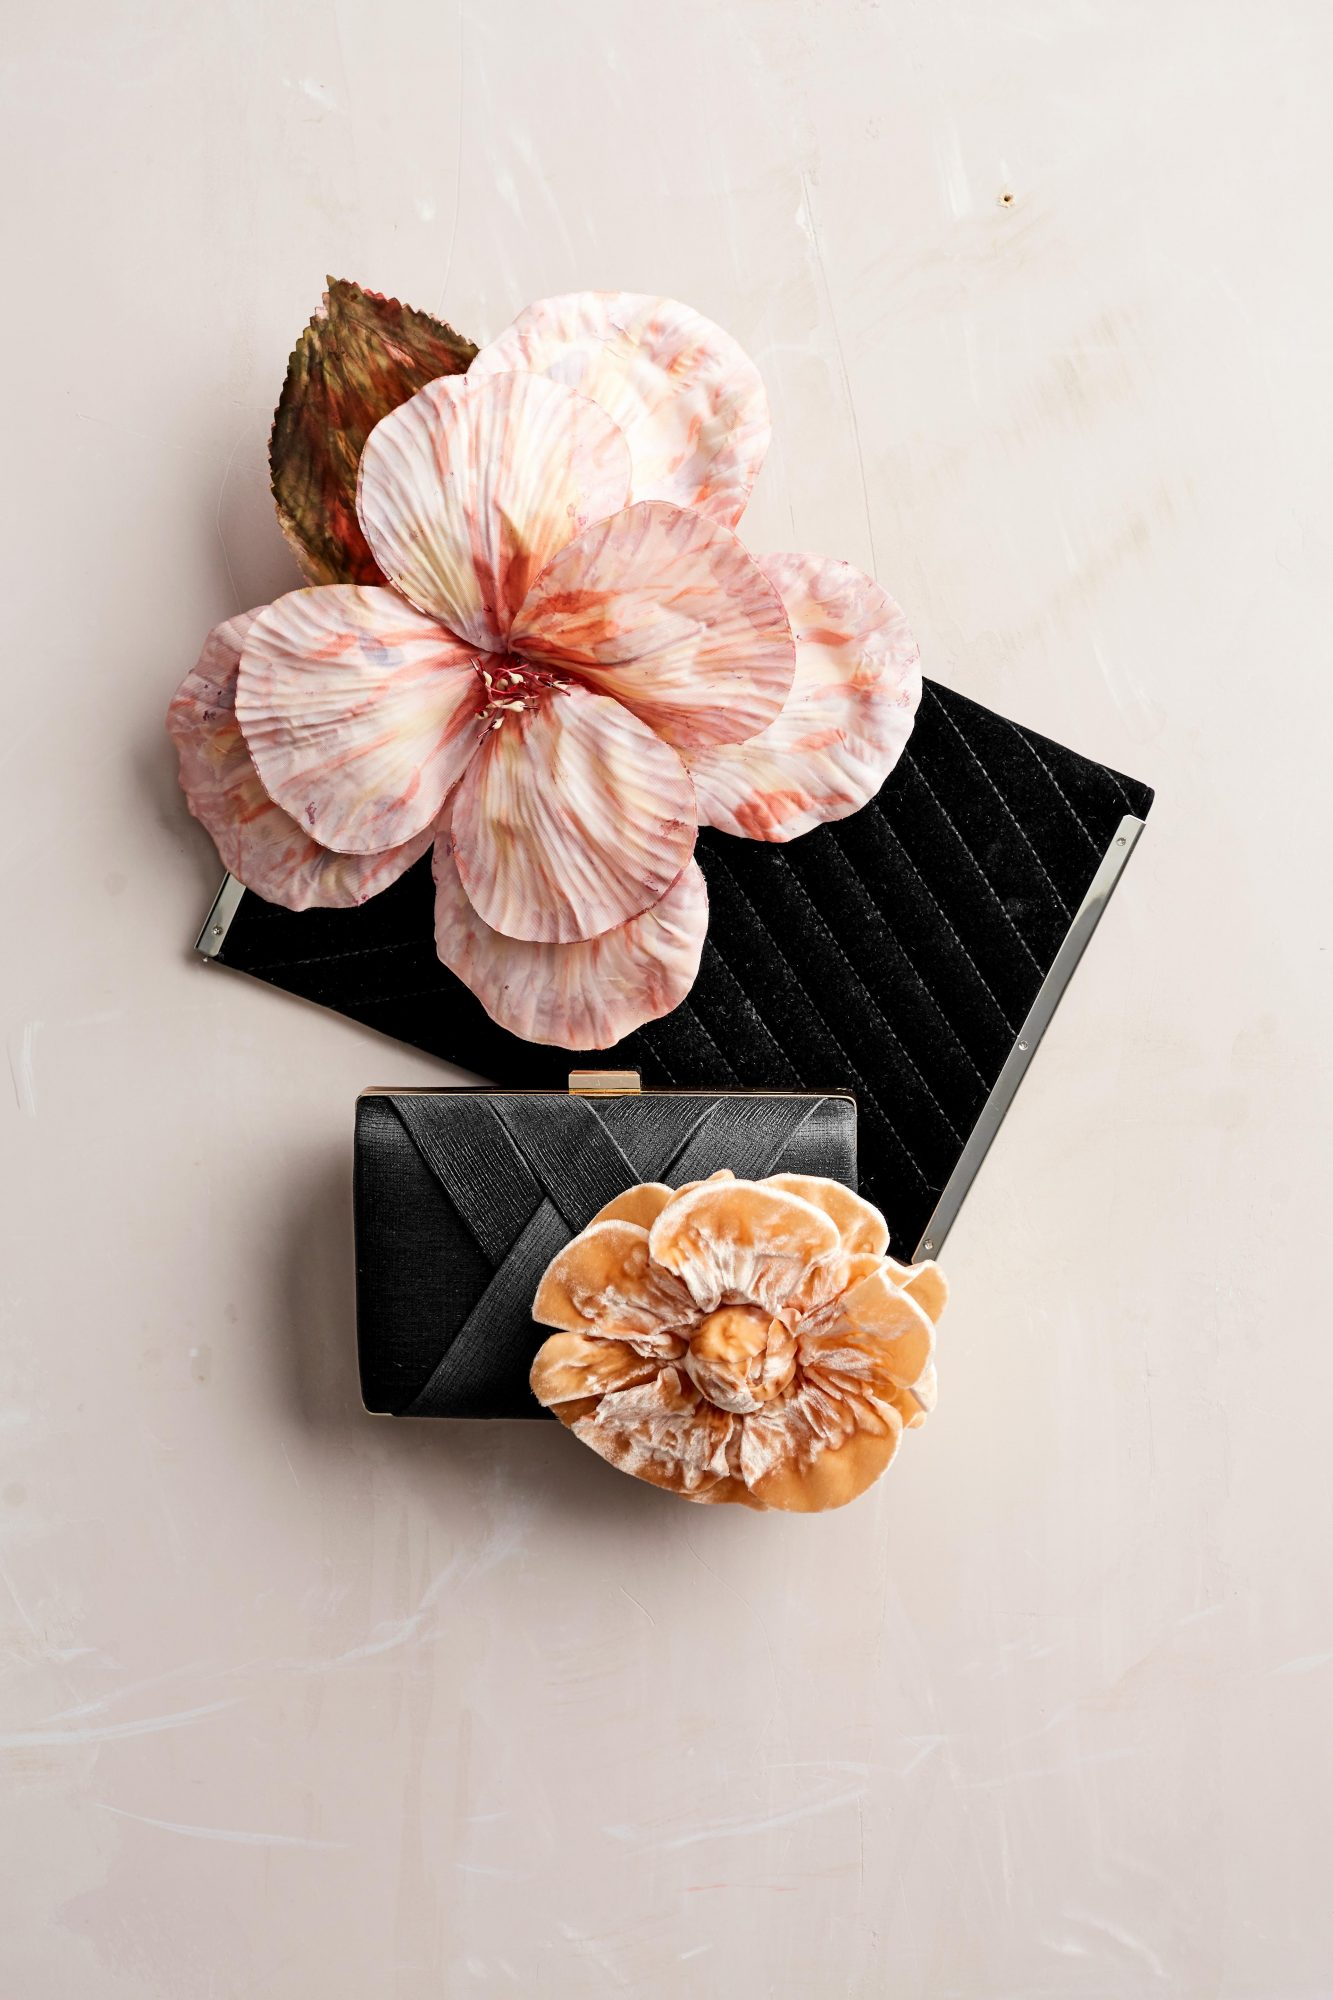 Clutch bags with decorative flowers